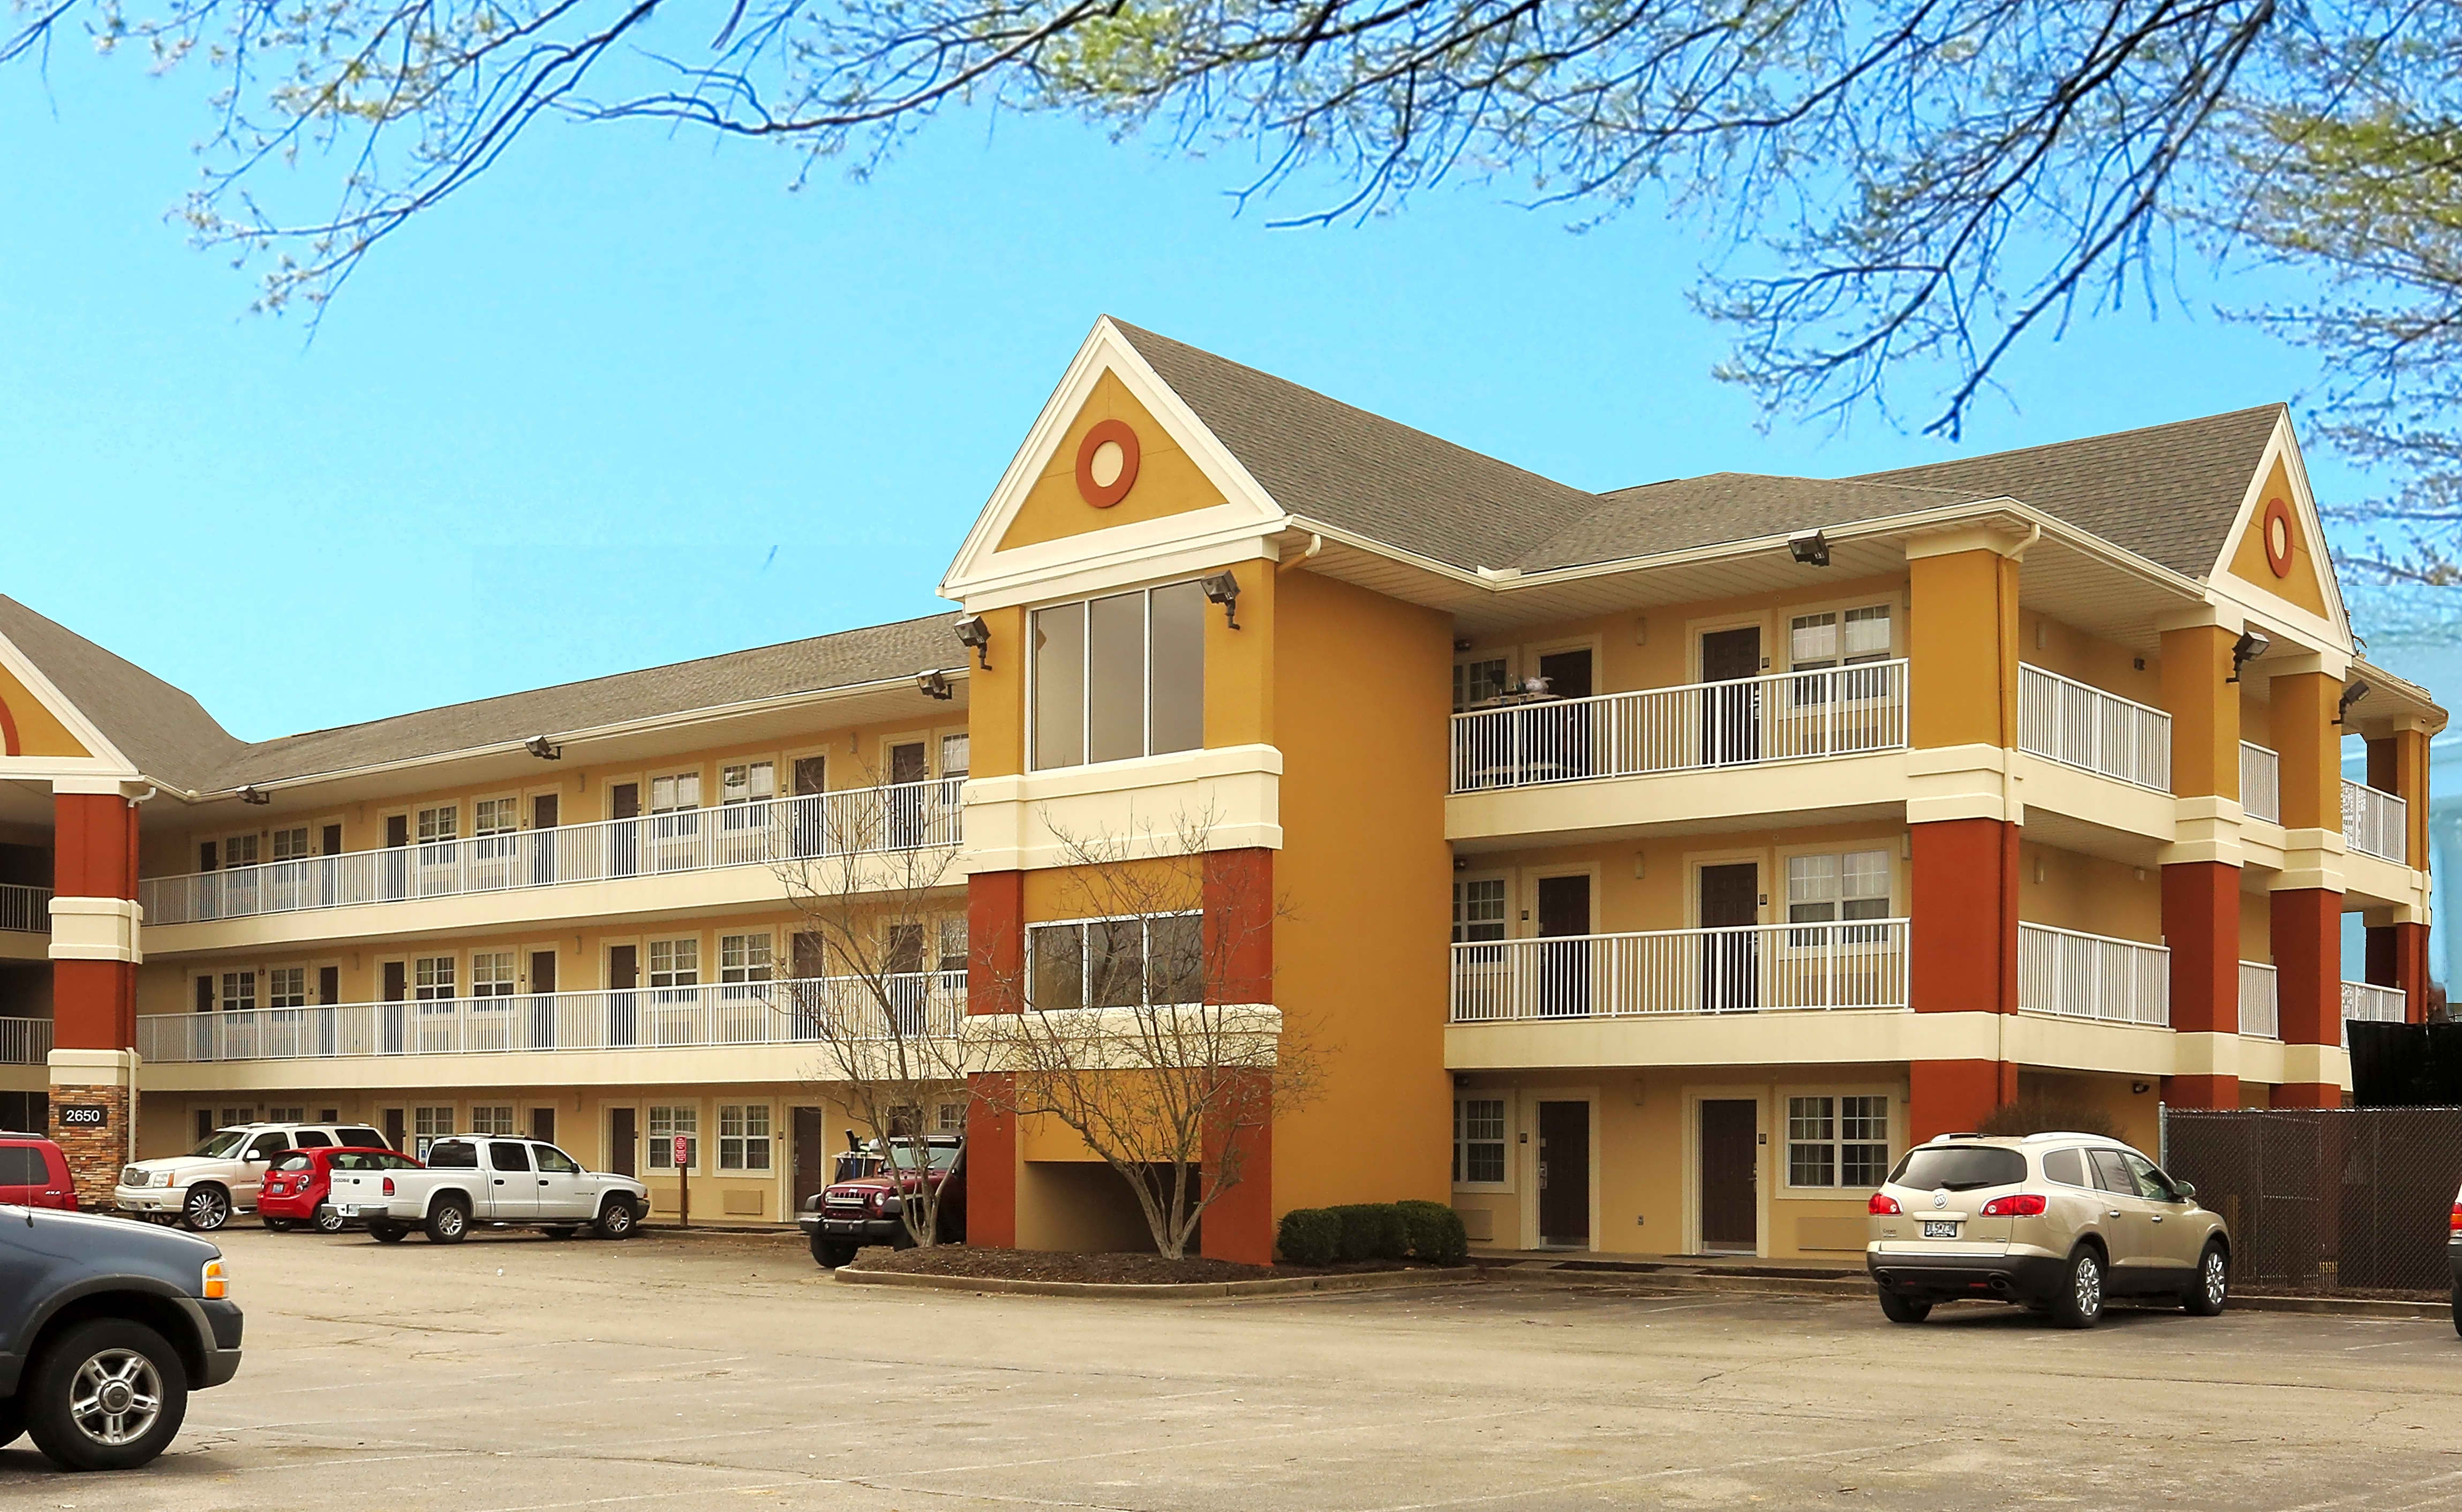 Apartments Near Asbury Seminary Furnished Studio - Lexington - Nicholasville Road for Asbury Theological Seminary Students in Wilmore, KY